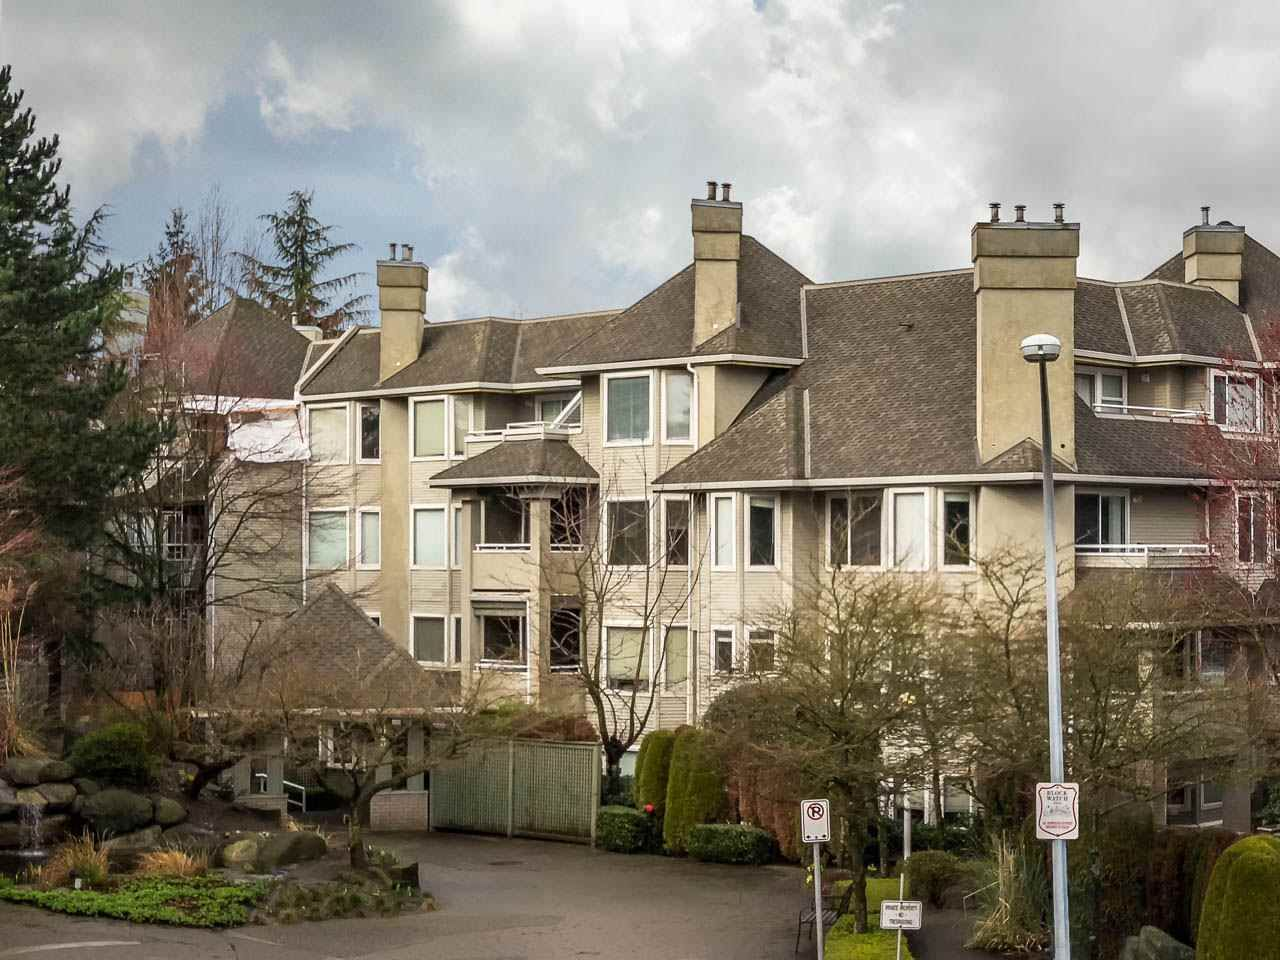 """Main Photo: 108 3733 NORFOLK Street in Burnaby: Central BN Condo for sale in """"Winchelsea"""" (Burnaby North)  : MLS®# R2400393"""